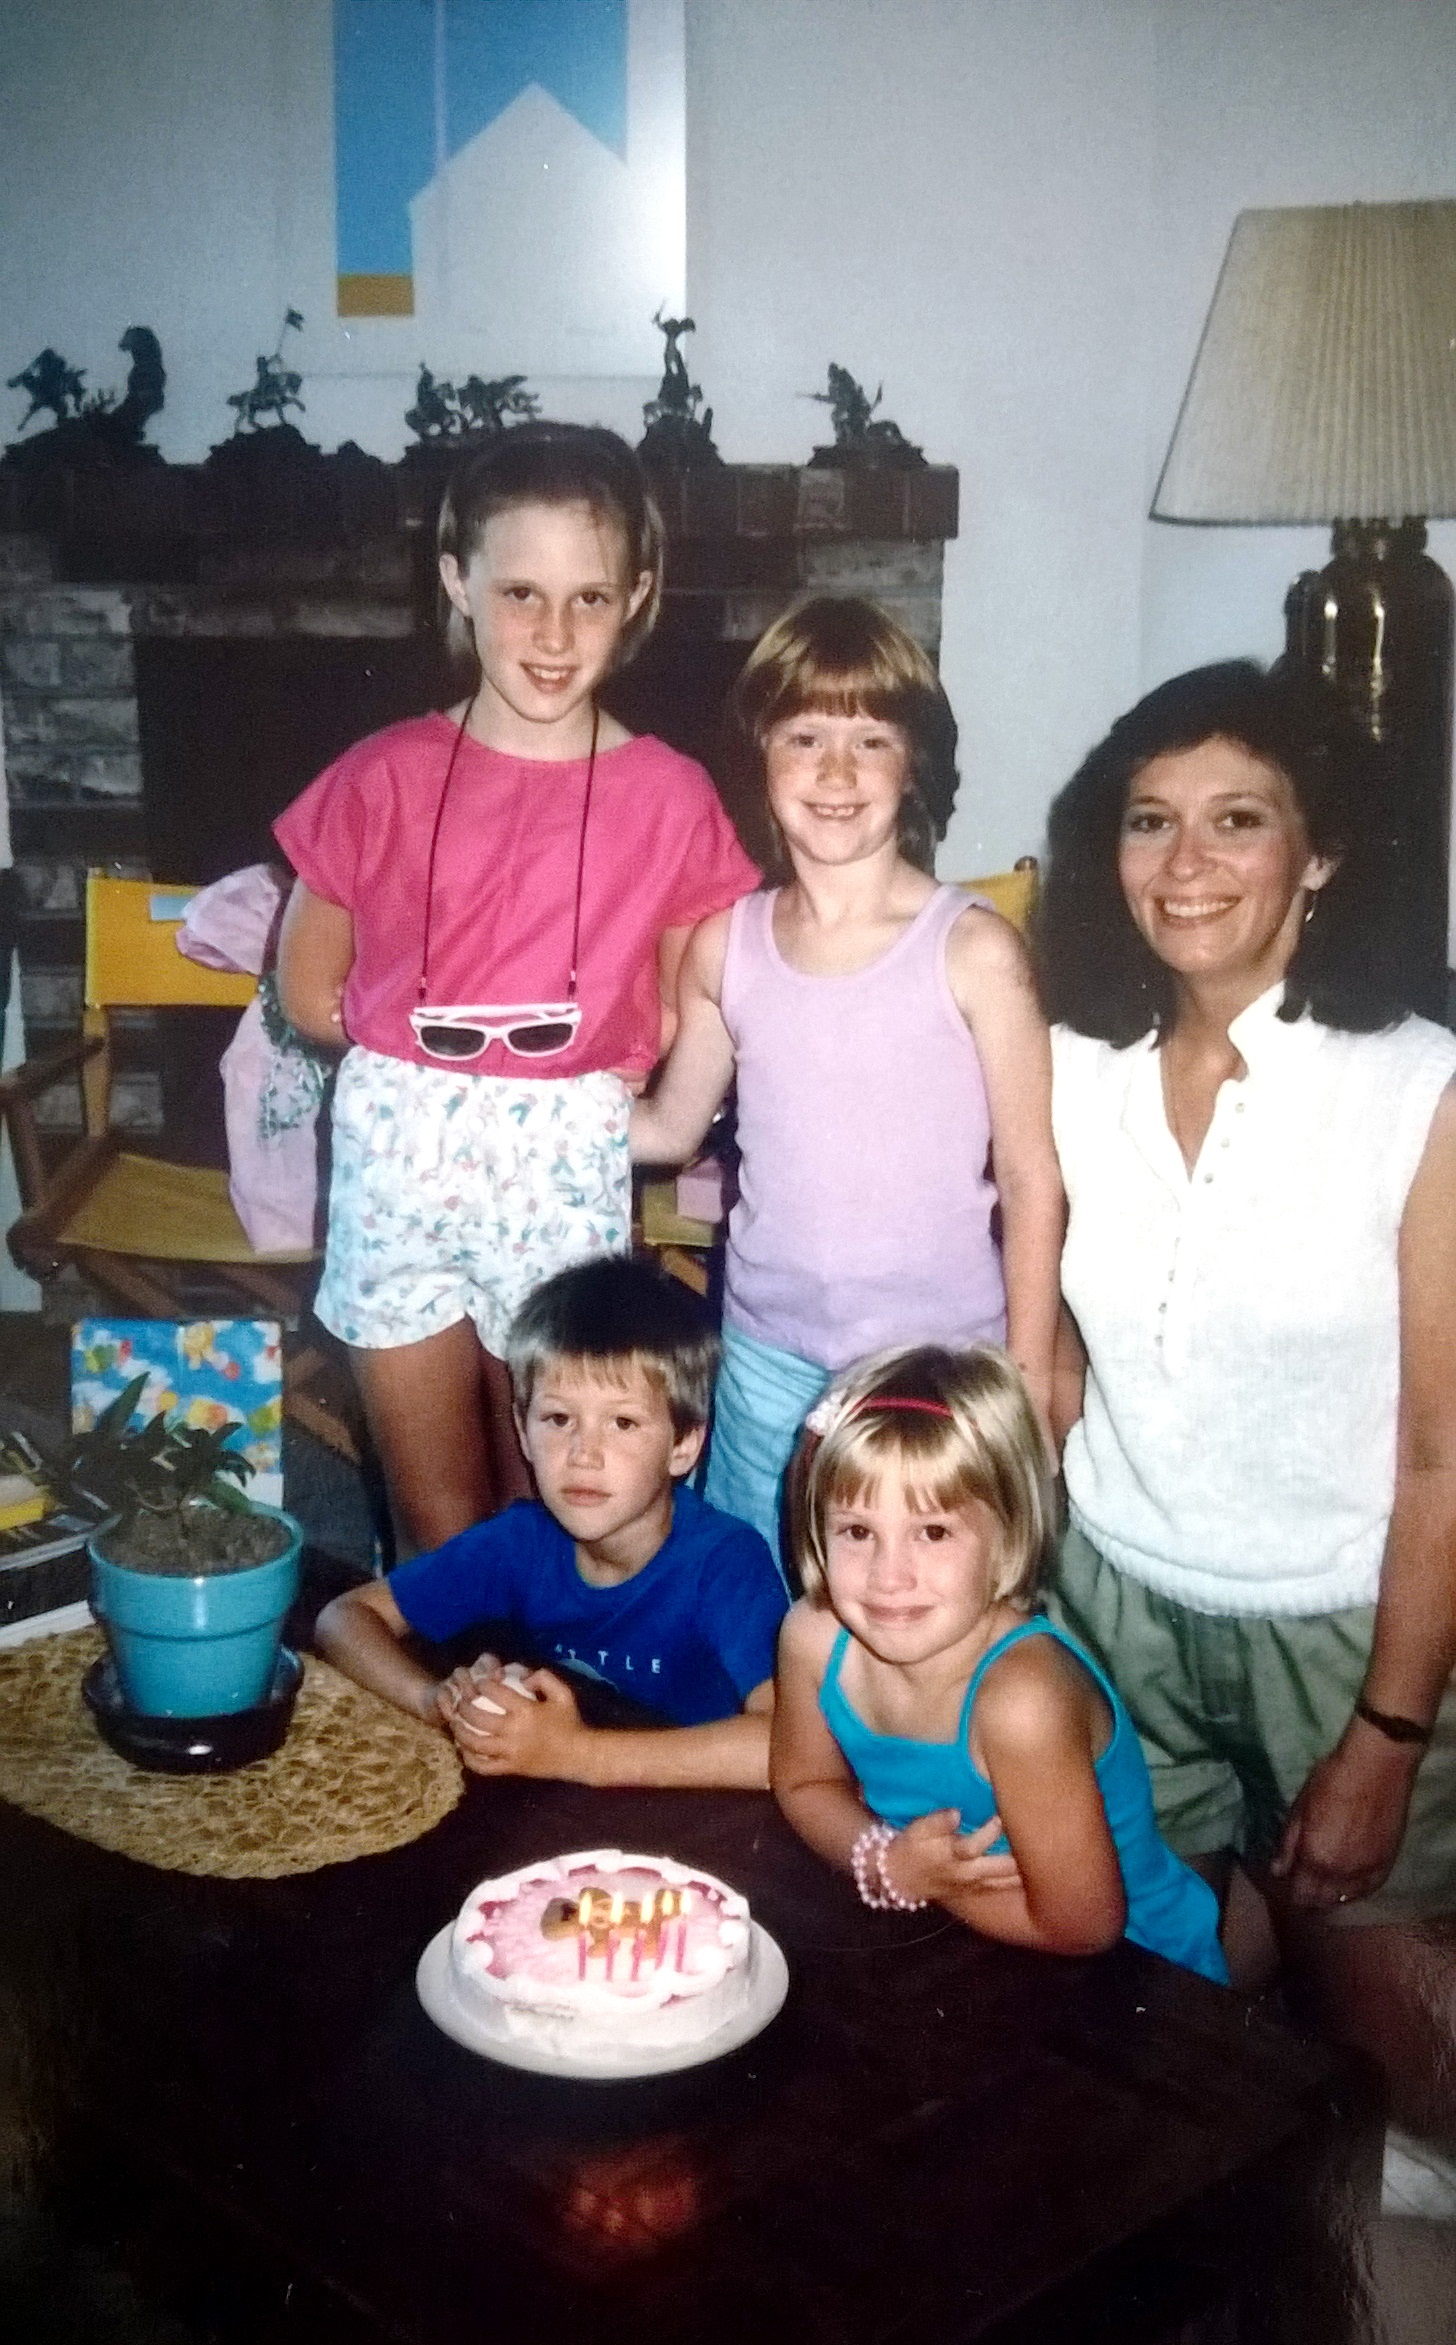 On my 5th birthday I was a cake-loving, shy, close-mouthed smile girl. We've come a long way, baby! But, Lord, look at those fabulously '80s outfits we all have. And also, I'd like to note that my mom is still this beautiful, so I'm REALLY lucking out in the gene pool. Of note: my mom is 38 years old in this picture. (I KNOW!!!!!)